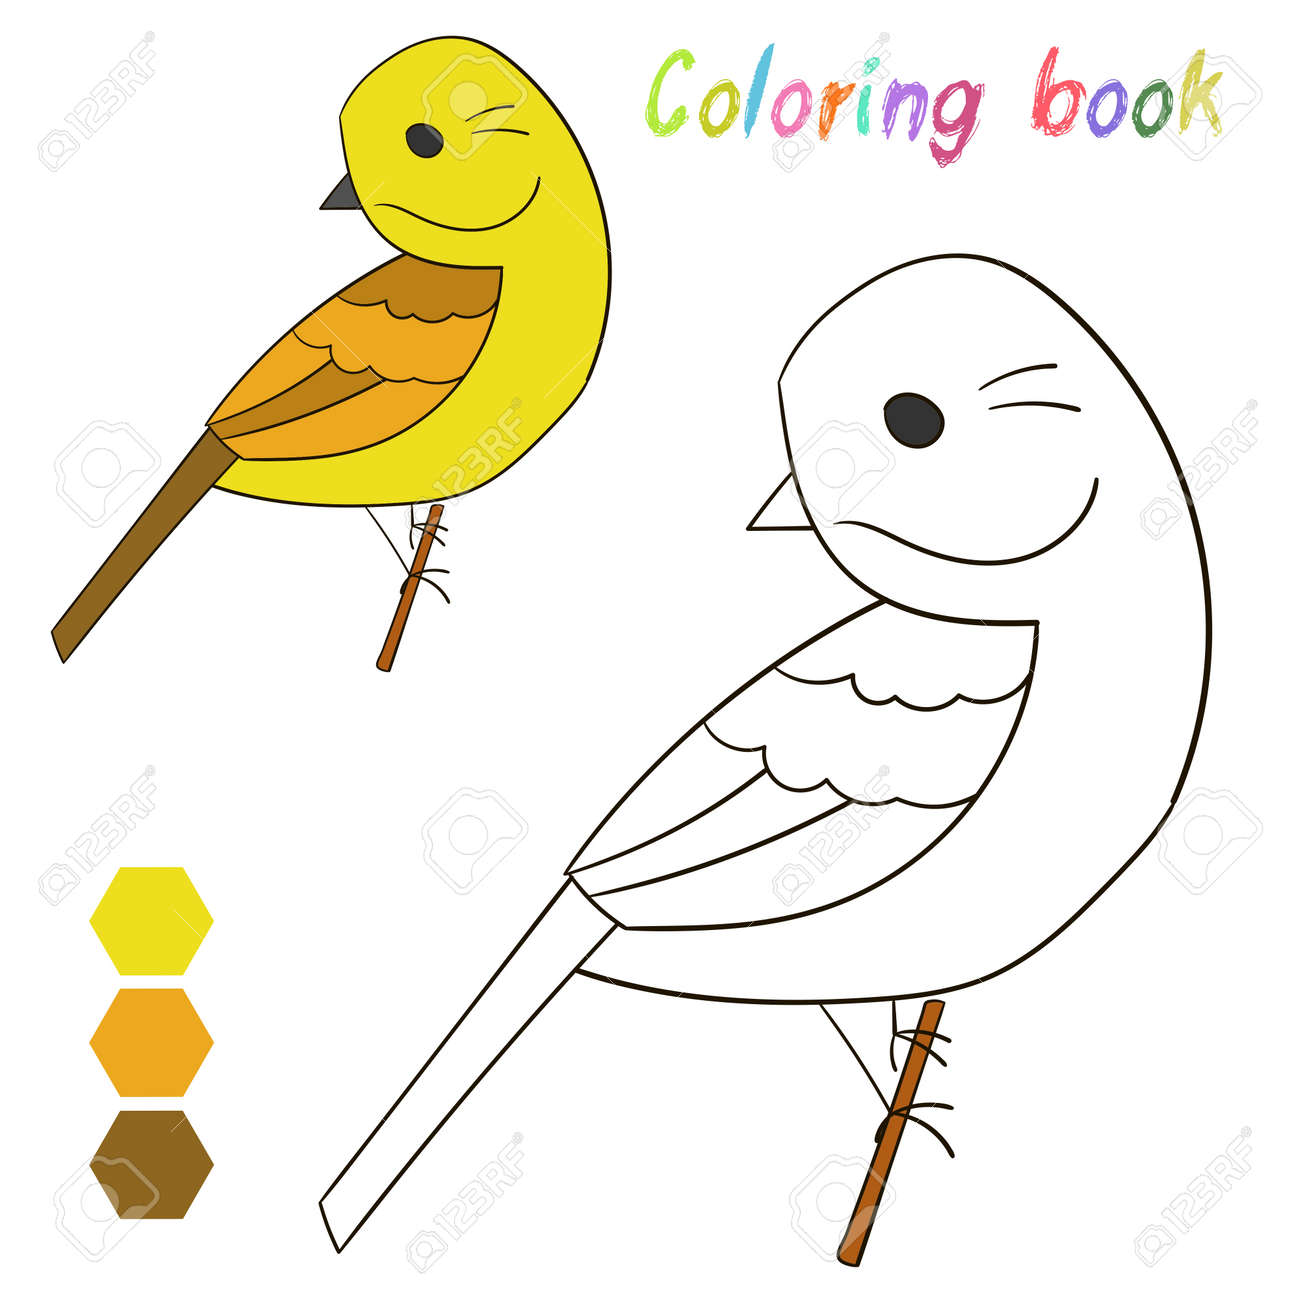 Coloring Book Bird Yellowhammer Kids Layout For Game Cartoon Royalty Free Cliparts Vectors And Stock Illustration Image 46552702